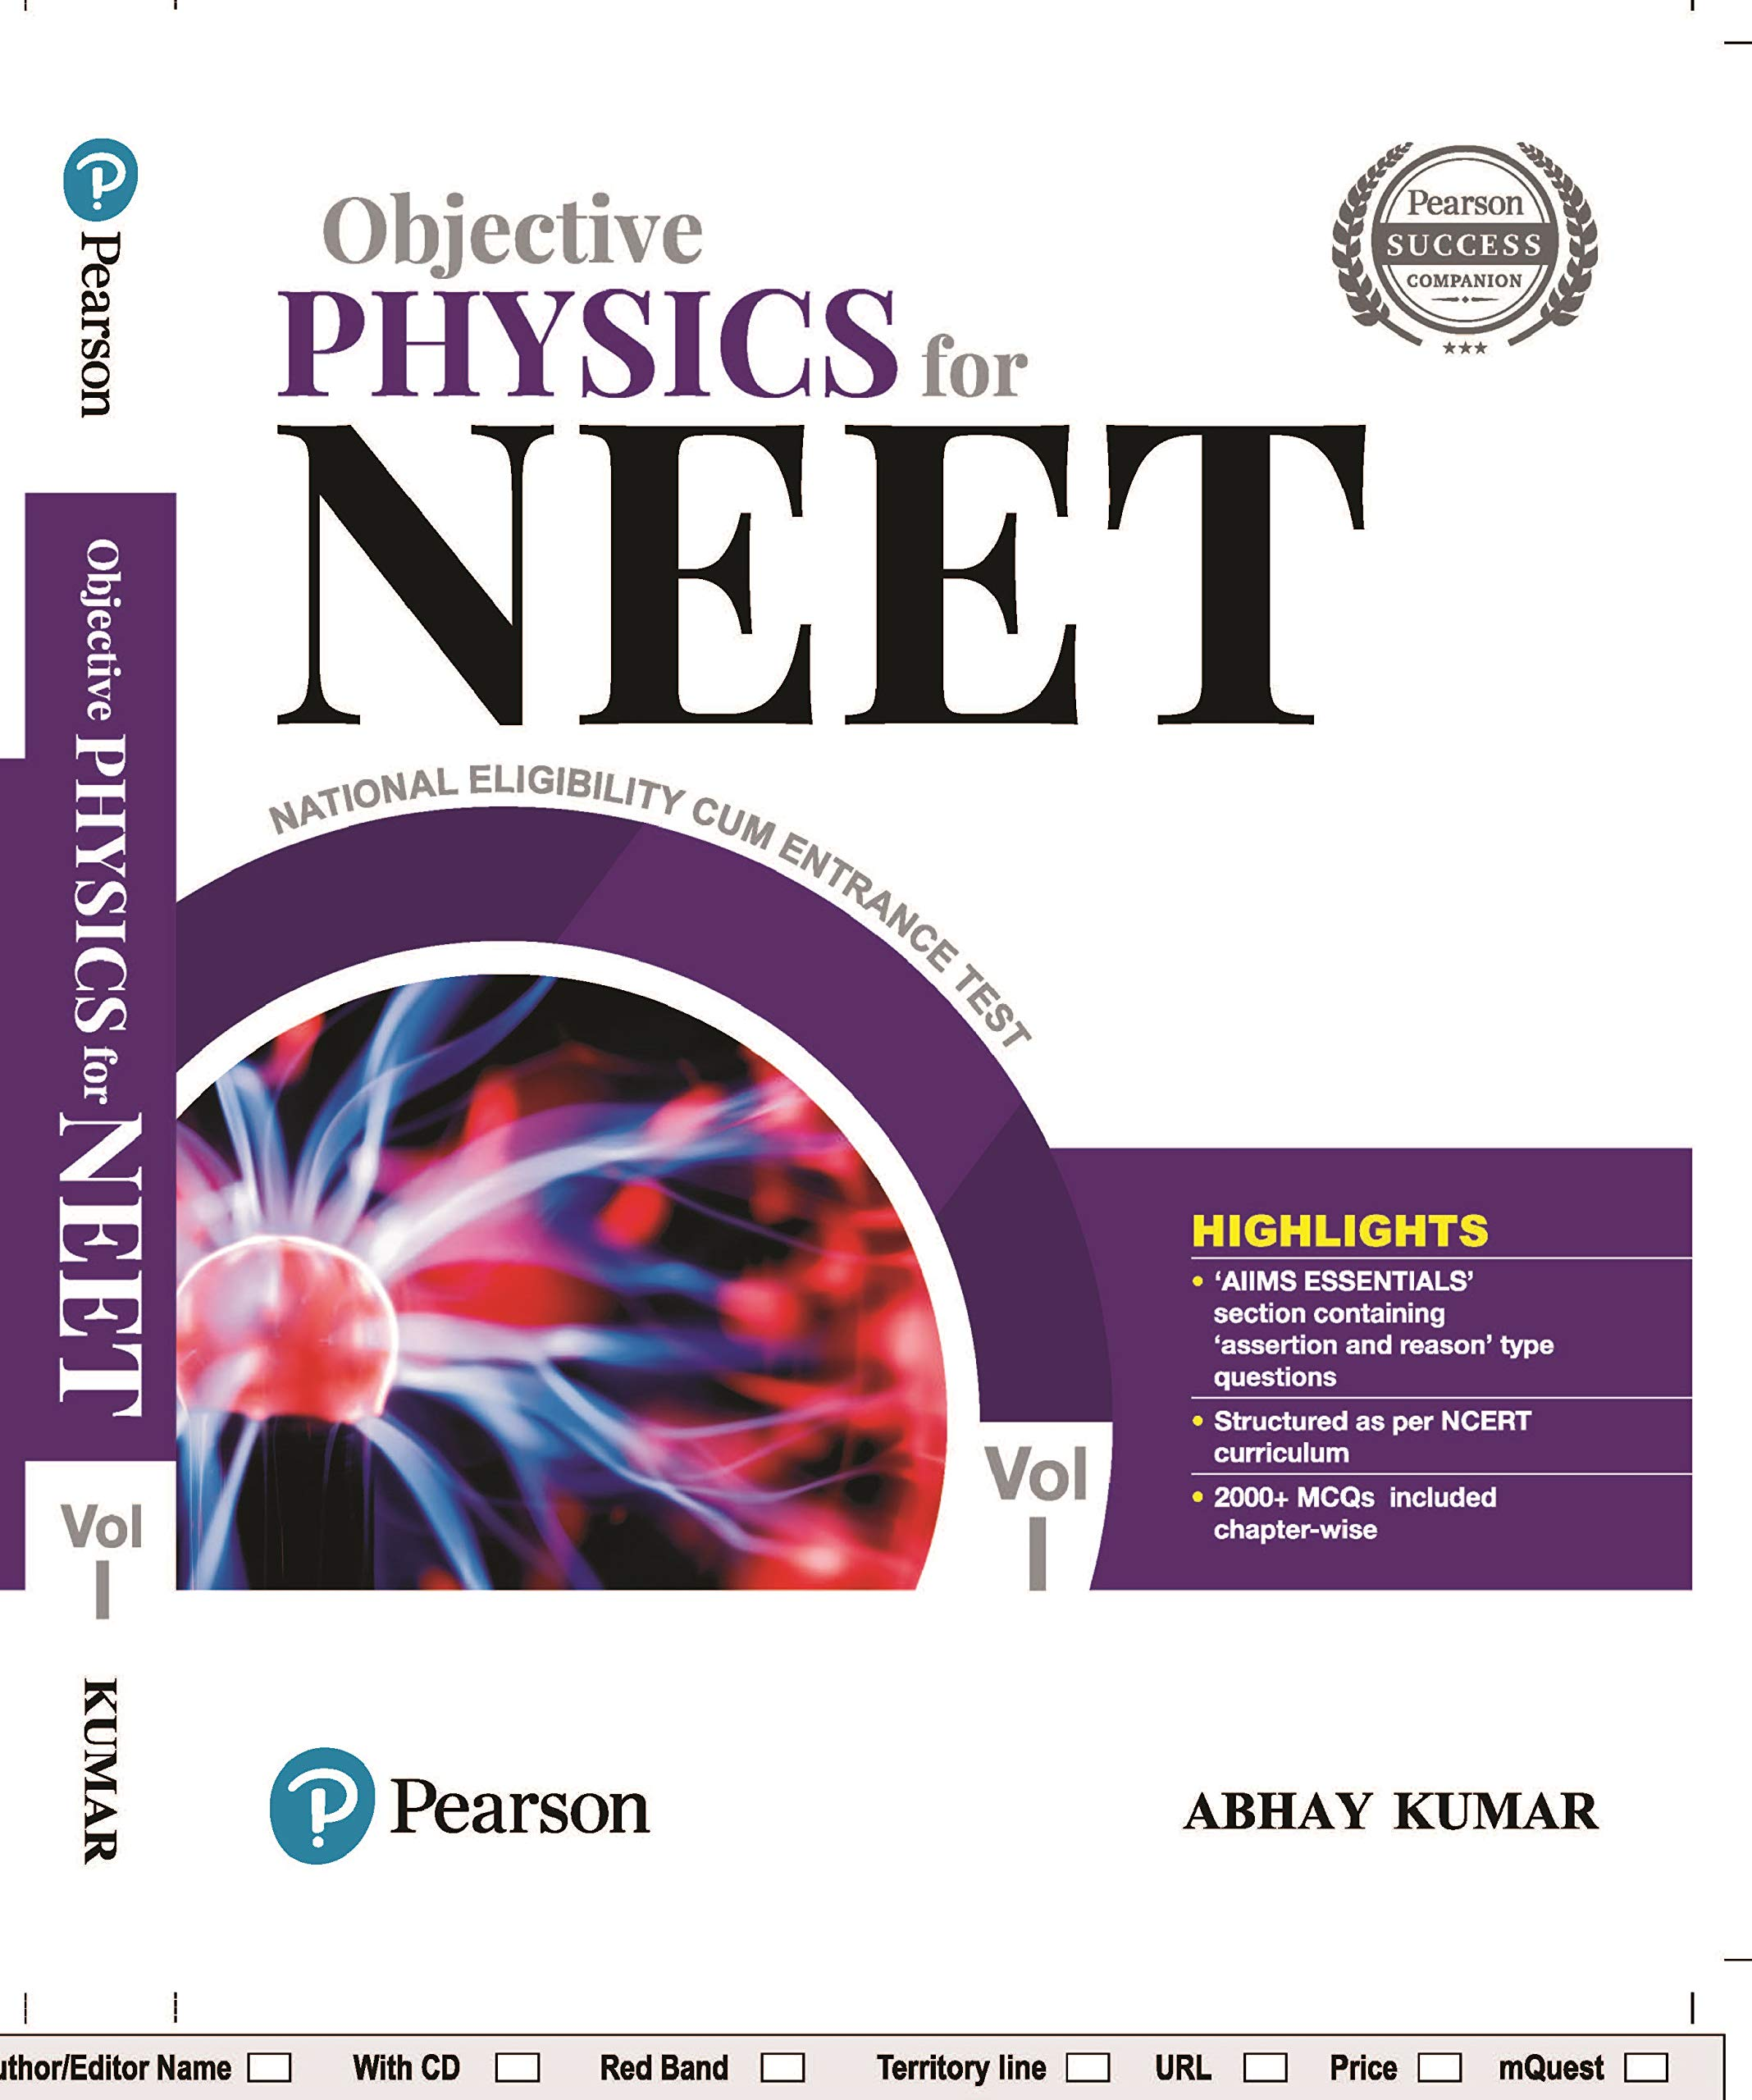 Buy Objective Physics for NEET by Pearson - Vol  1 Book